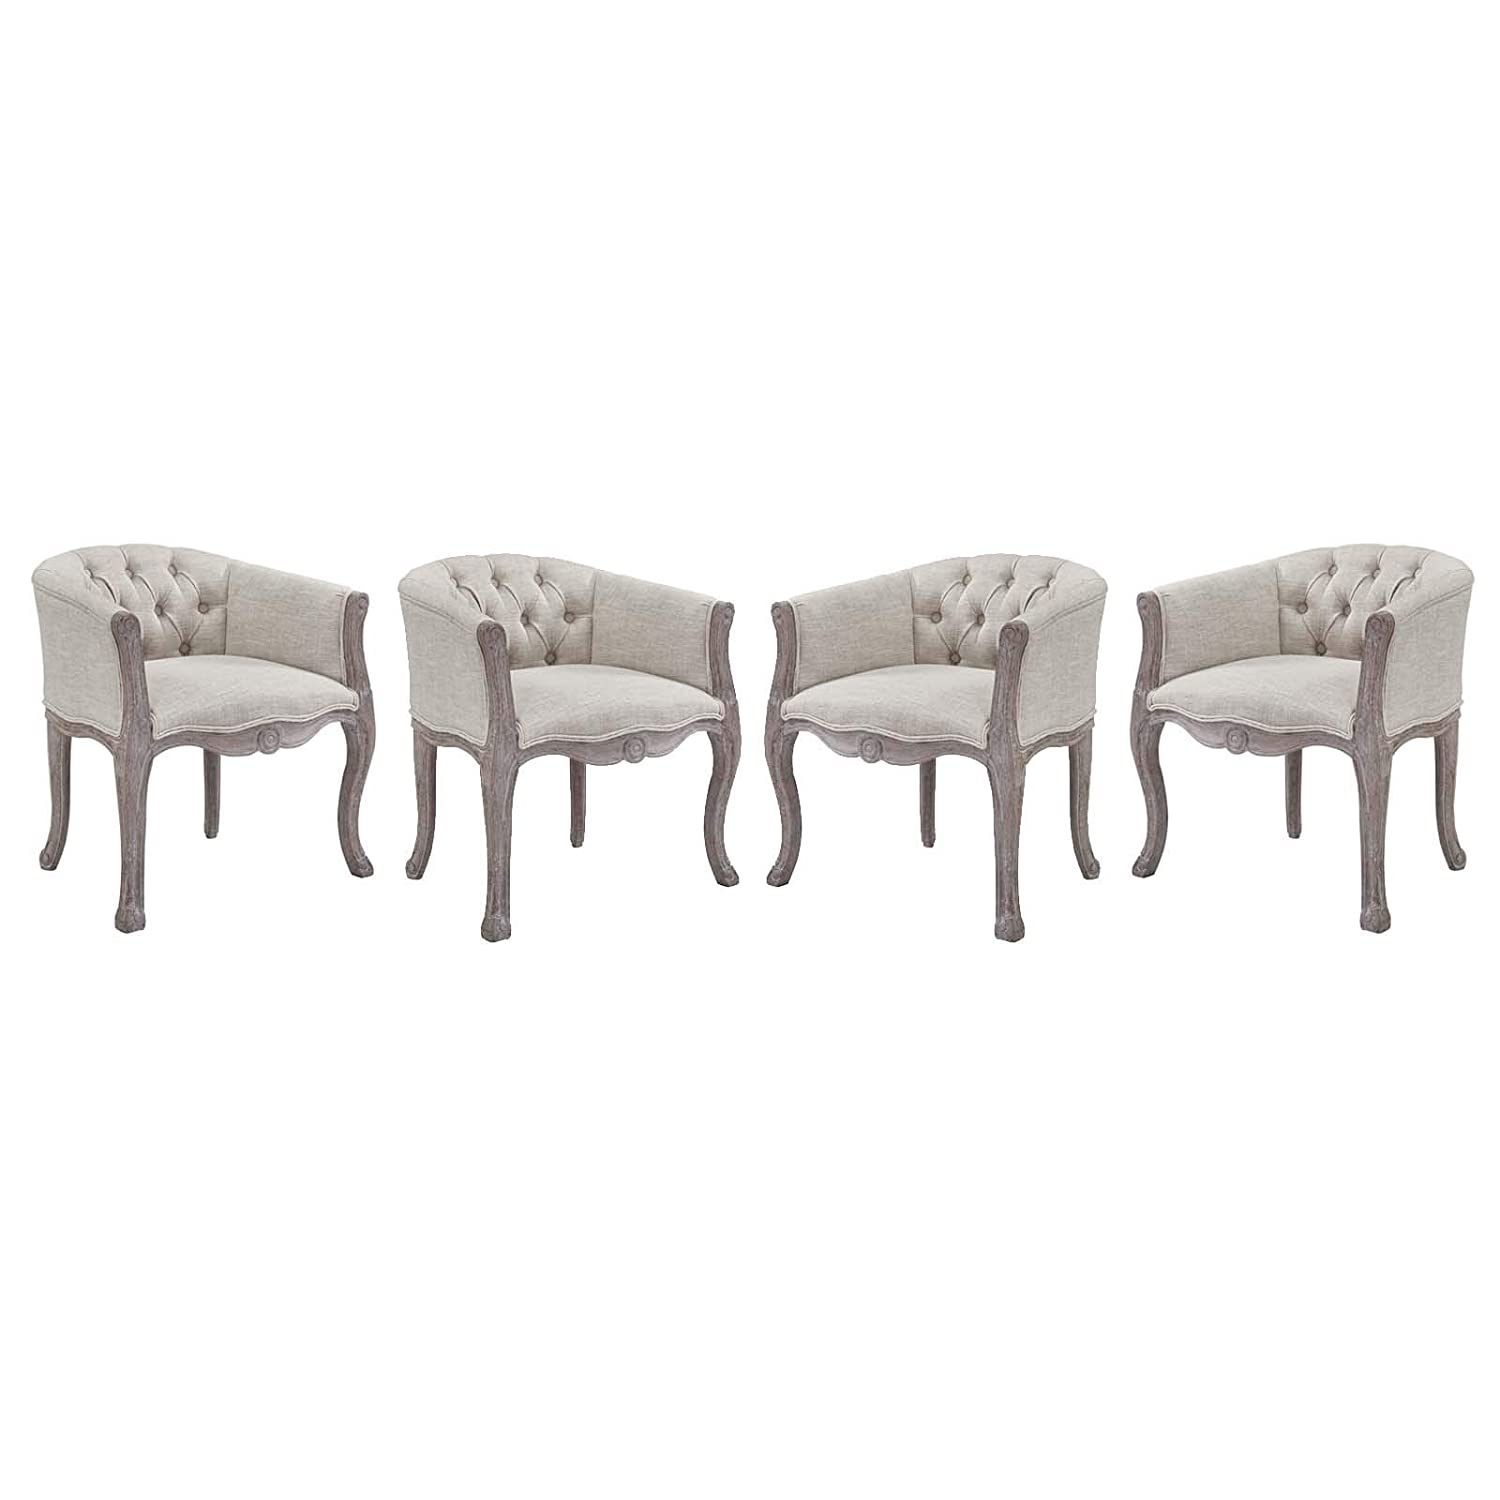 Modway Crown French Vintage Barrel Back Tufted Upholstered Fabric Four Kitchen and Dining Room Arm Chairs in Beige - Fully Assembled